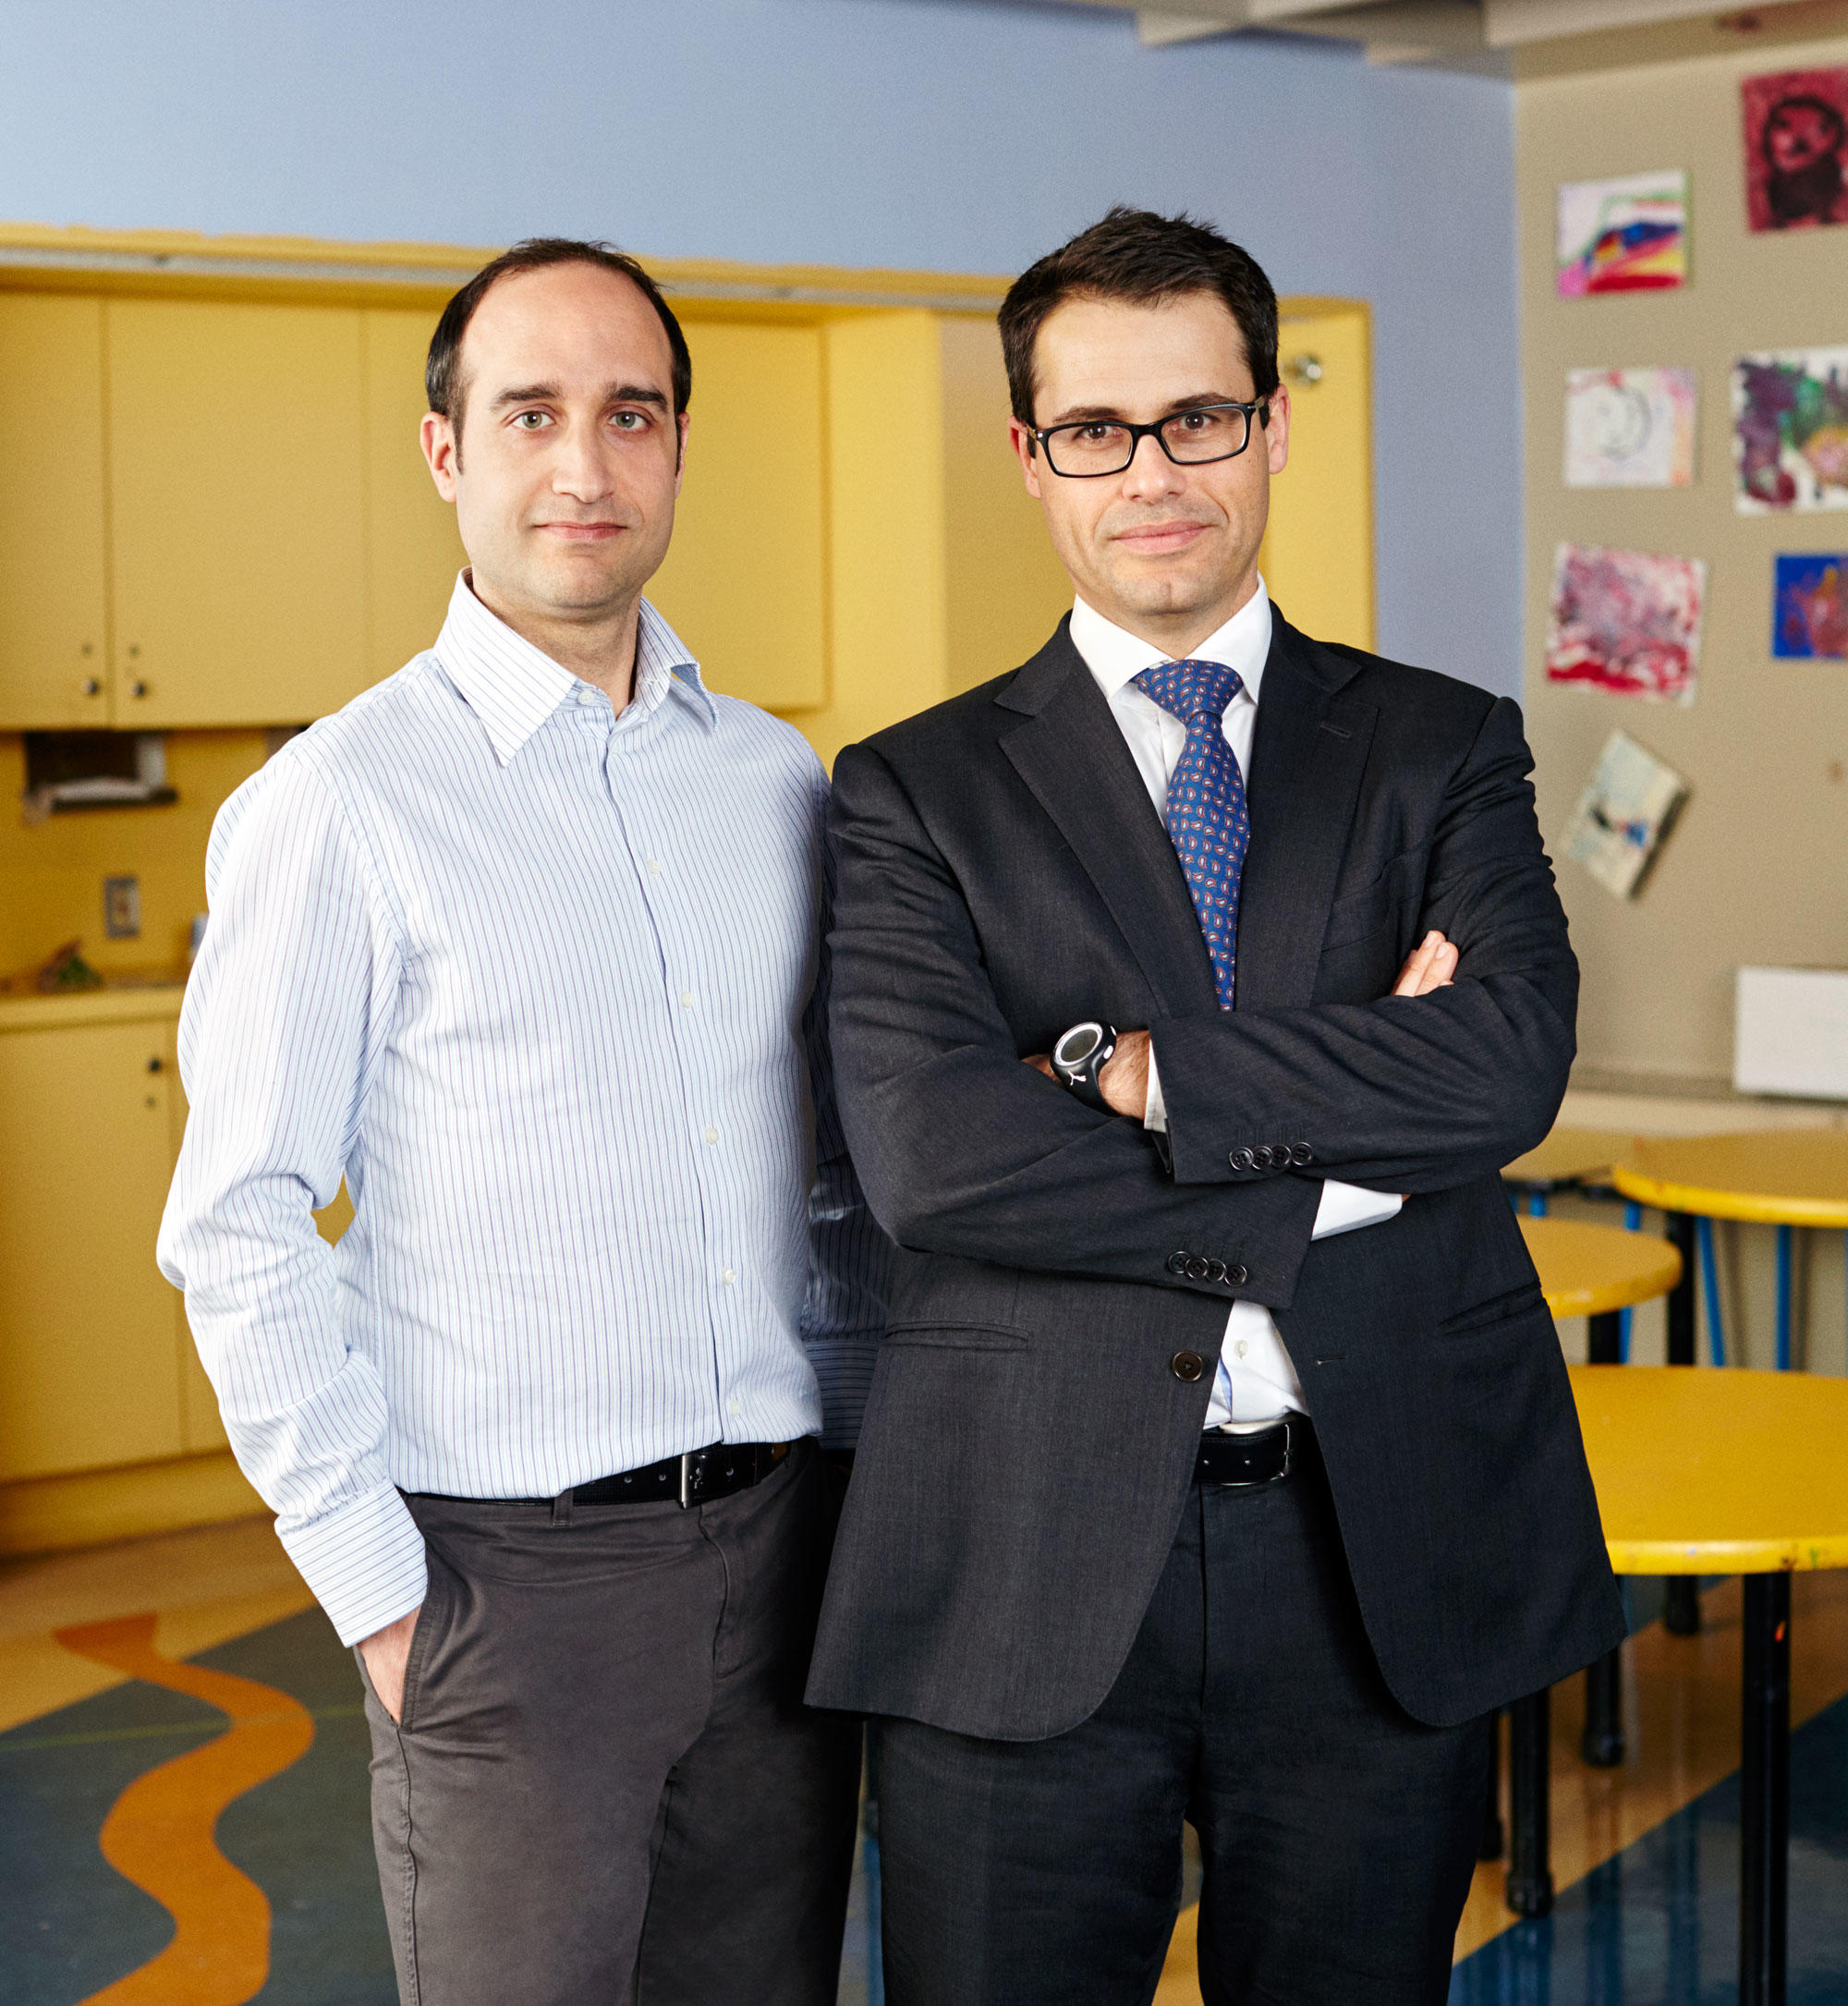 Leukemia researchers Alberto Ambesi-Impiombato and Adolfo Ferrando